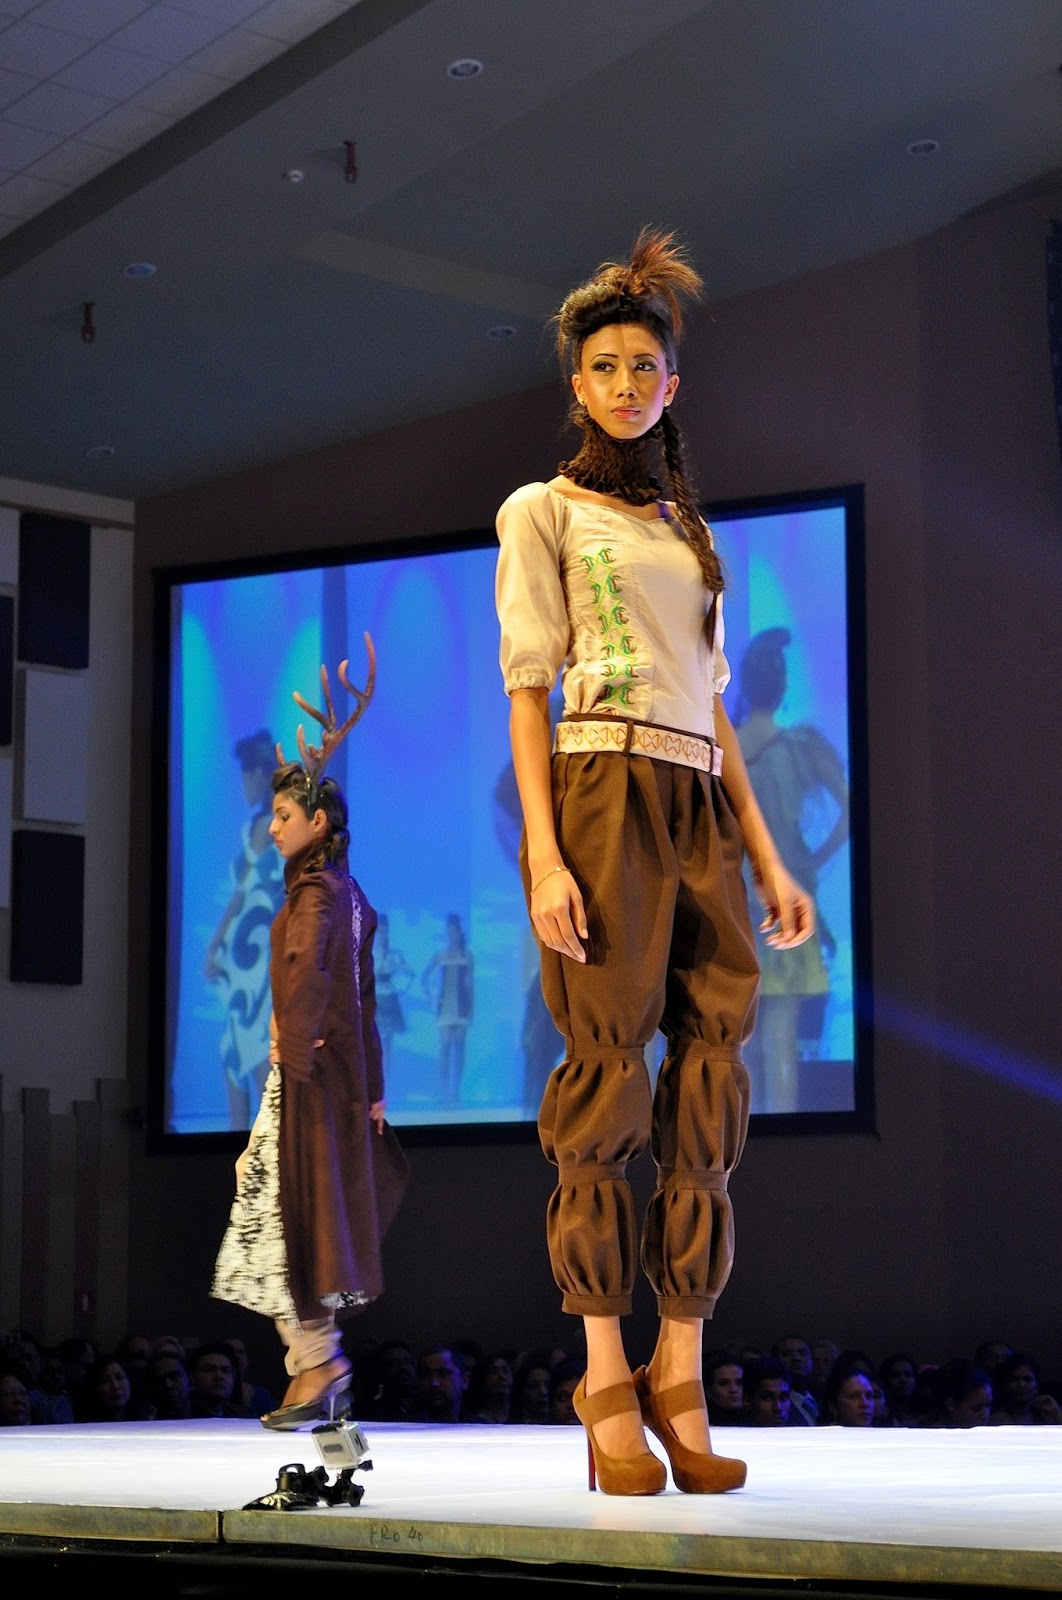 Brankopopovicblog Fashion Design Institute Mauritius Fashion Show 2013